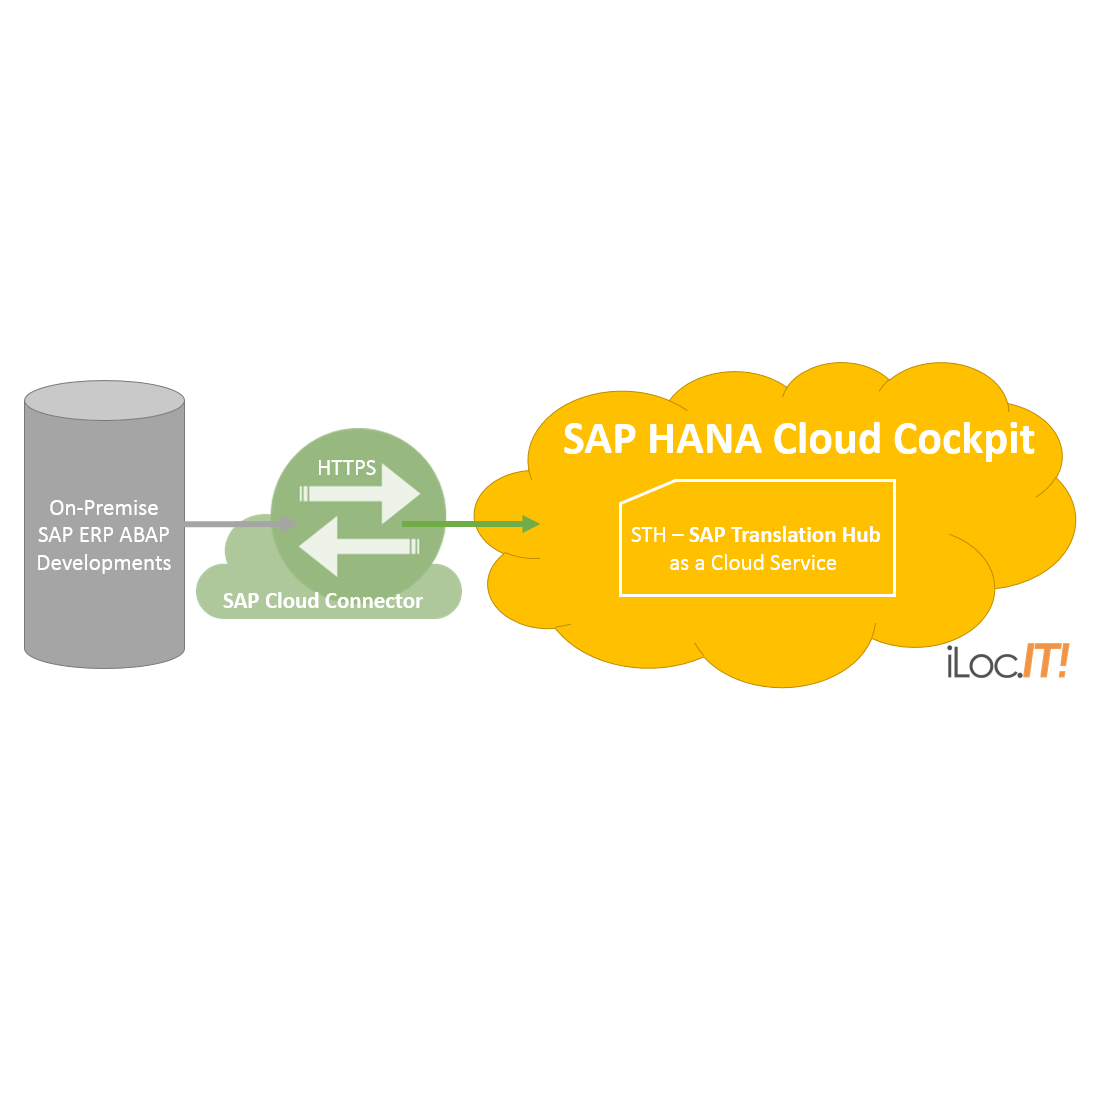 new sth sap translation hub how to get automatic translations of